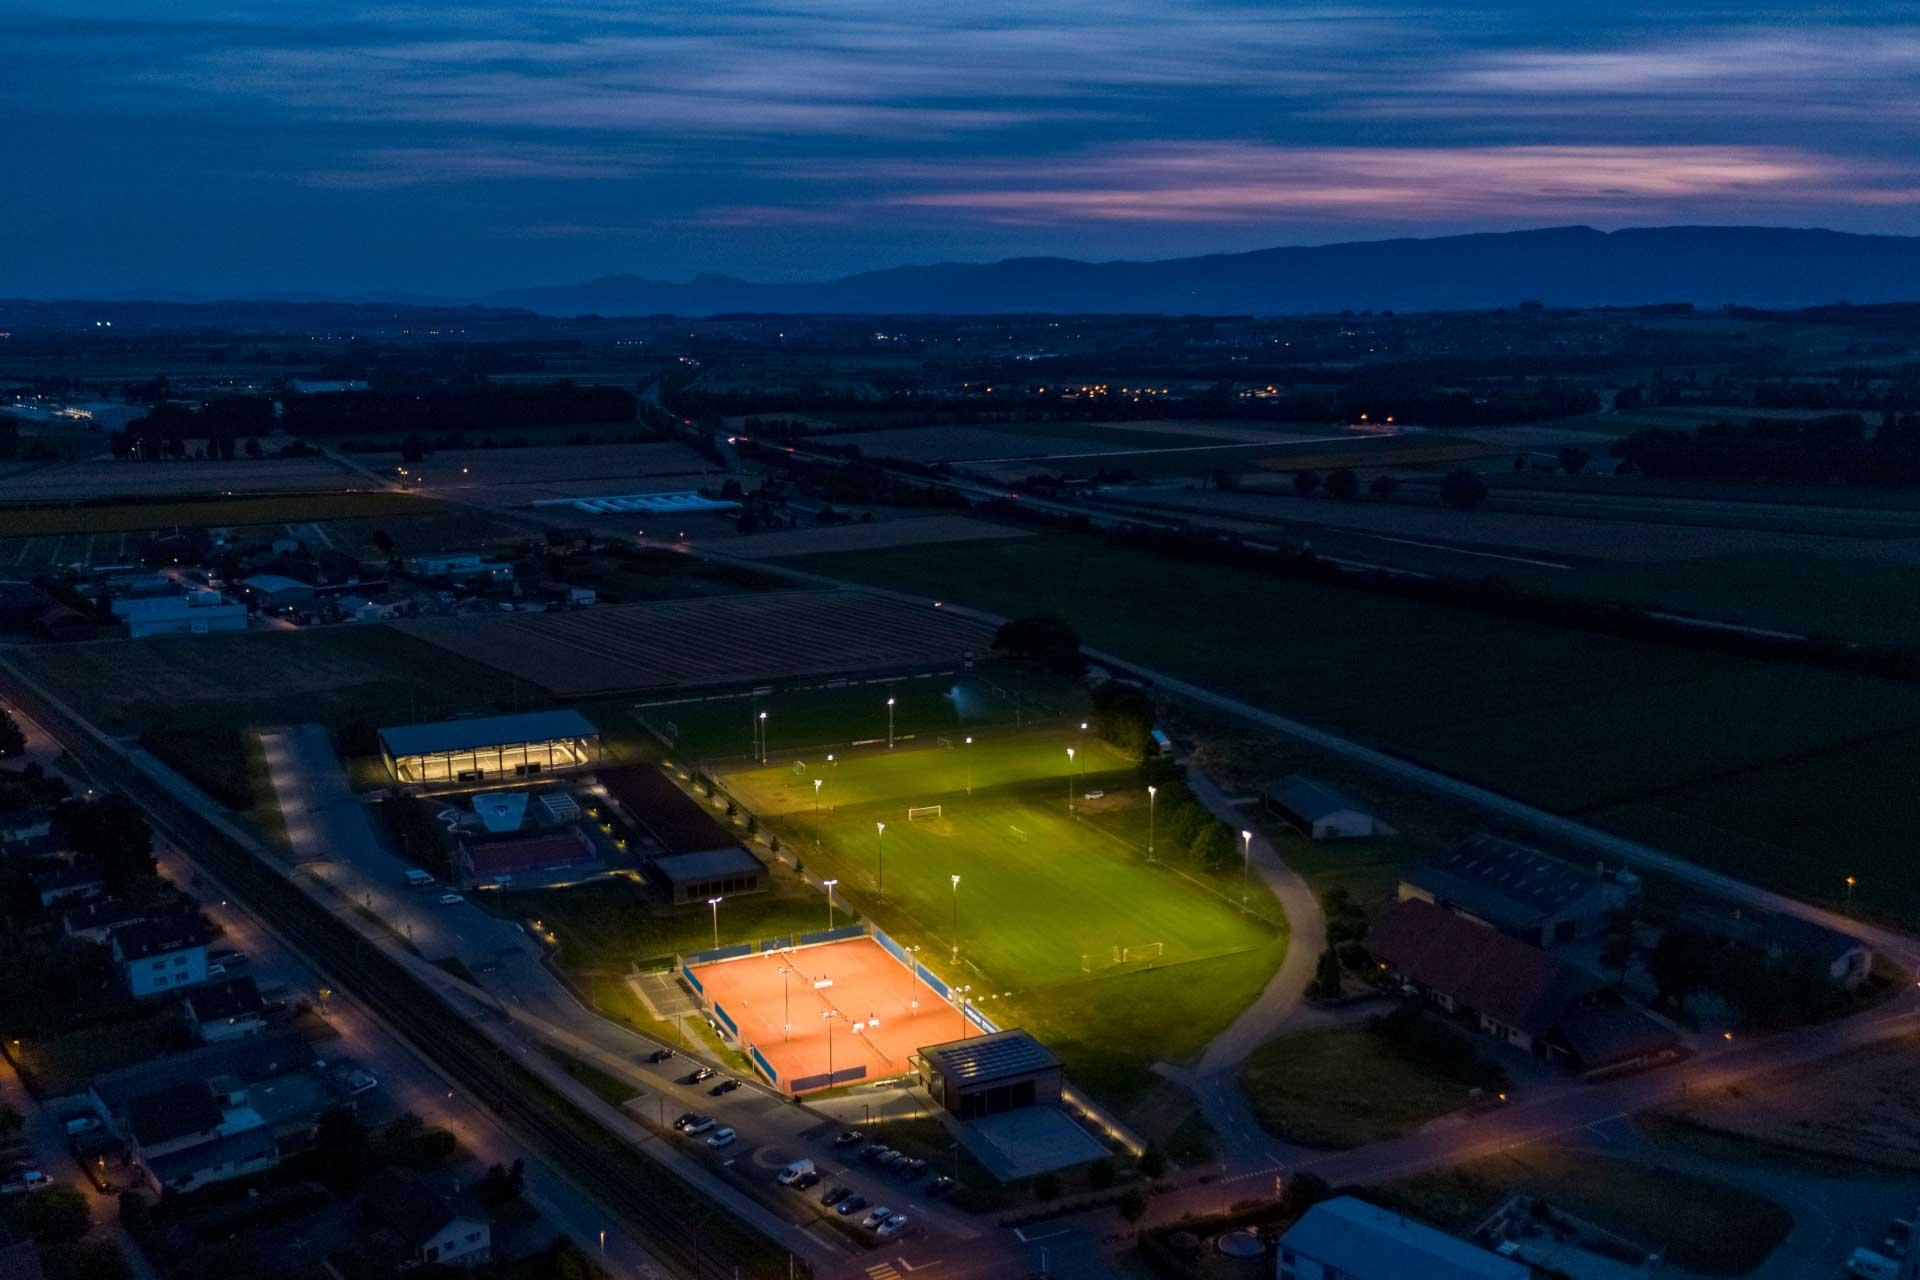 OMNIstar floodlights light FC Avenches football pitch with zero light spill, preserving the night sky